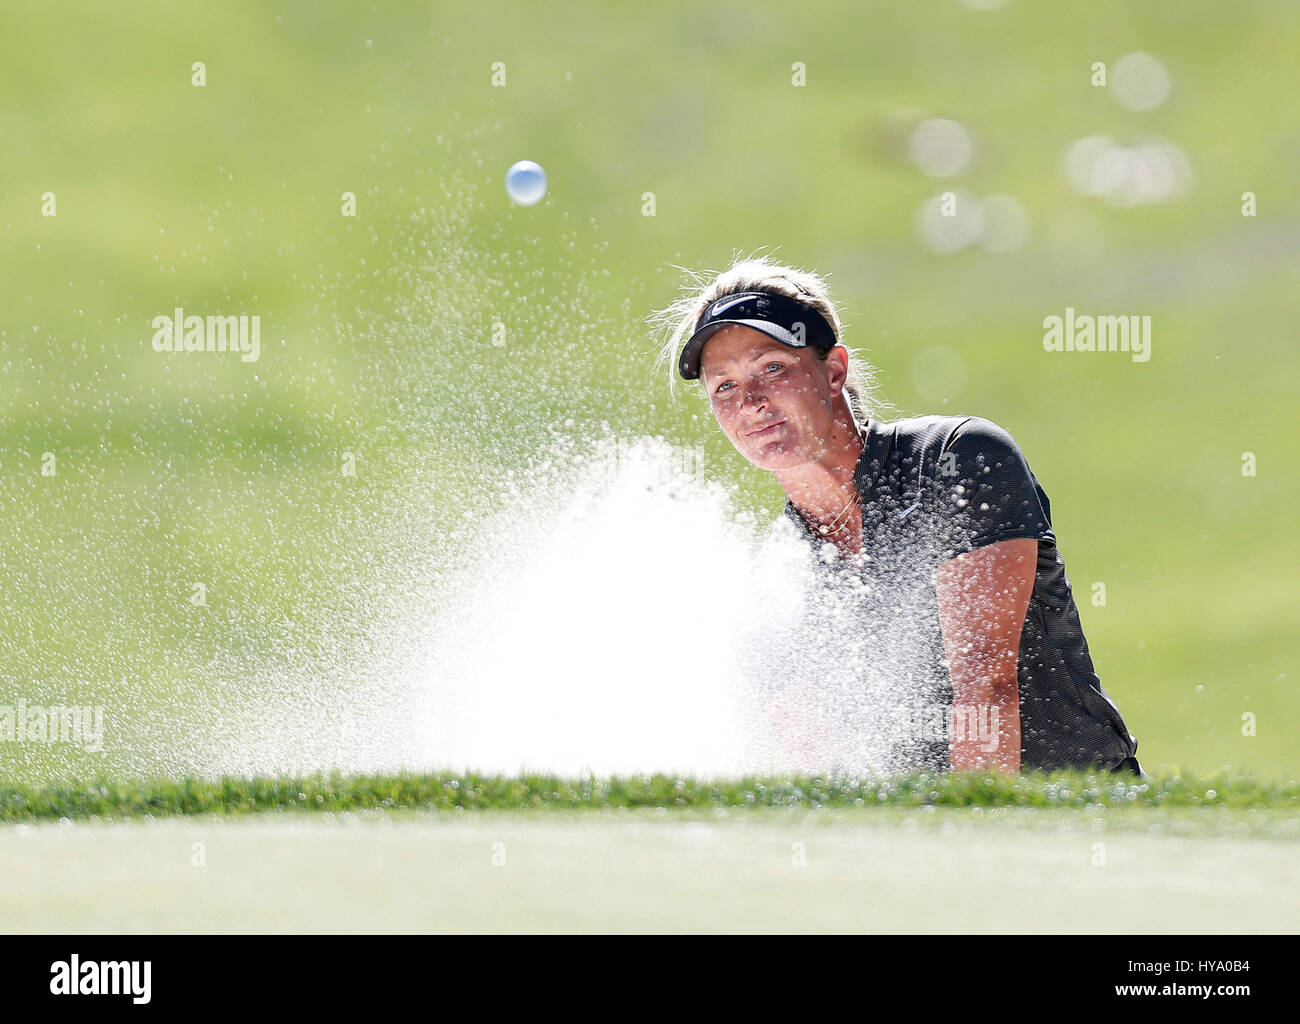 April 02, 2017 Suzann Petterson of Norway hits out of a bunker on the eighth hole during the final round of the Stock Photo